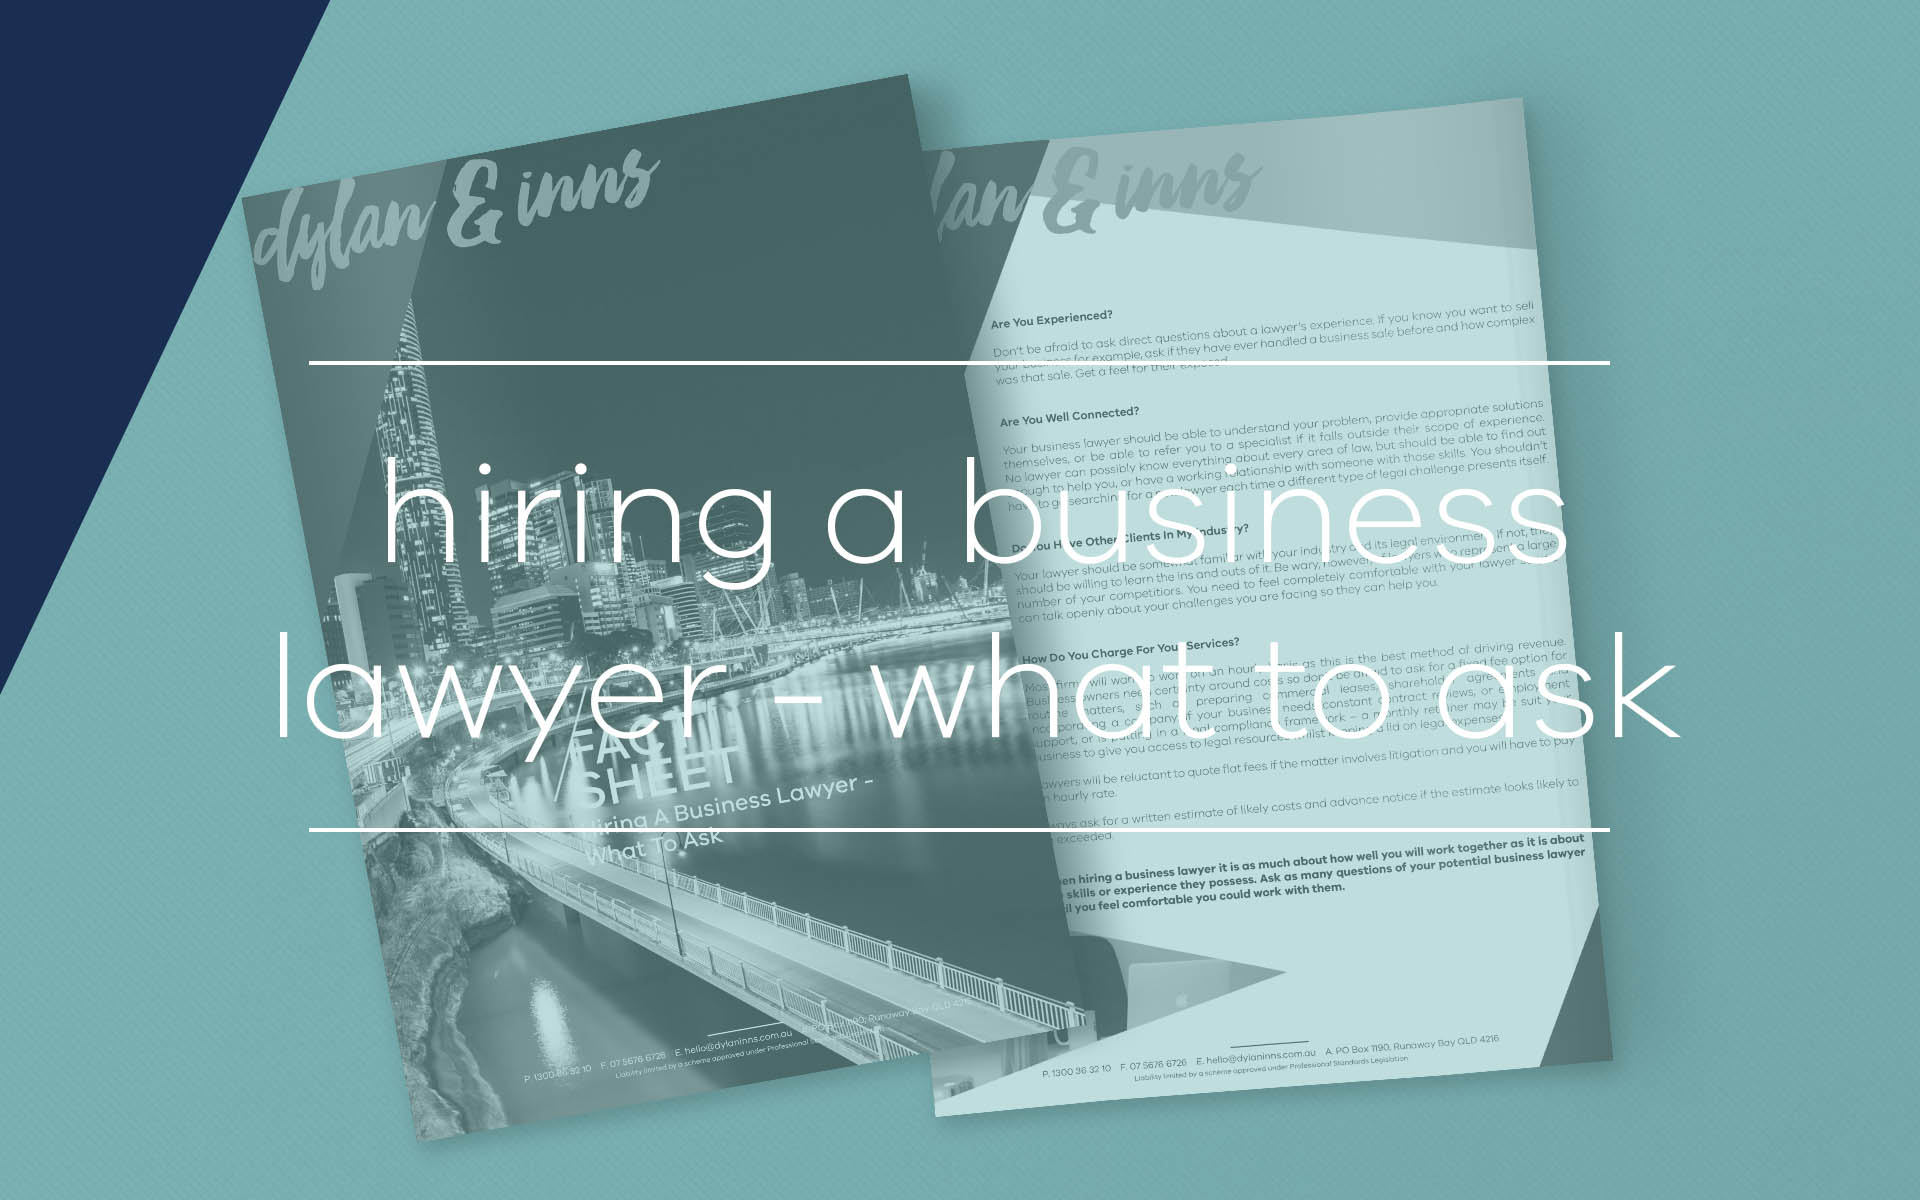 When deciding to hire a commercial lawyer to assist with legal issues with your business, it is important you find the right person to fit your legal needs.